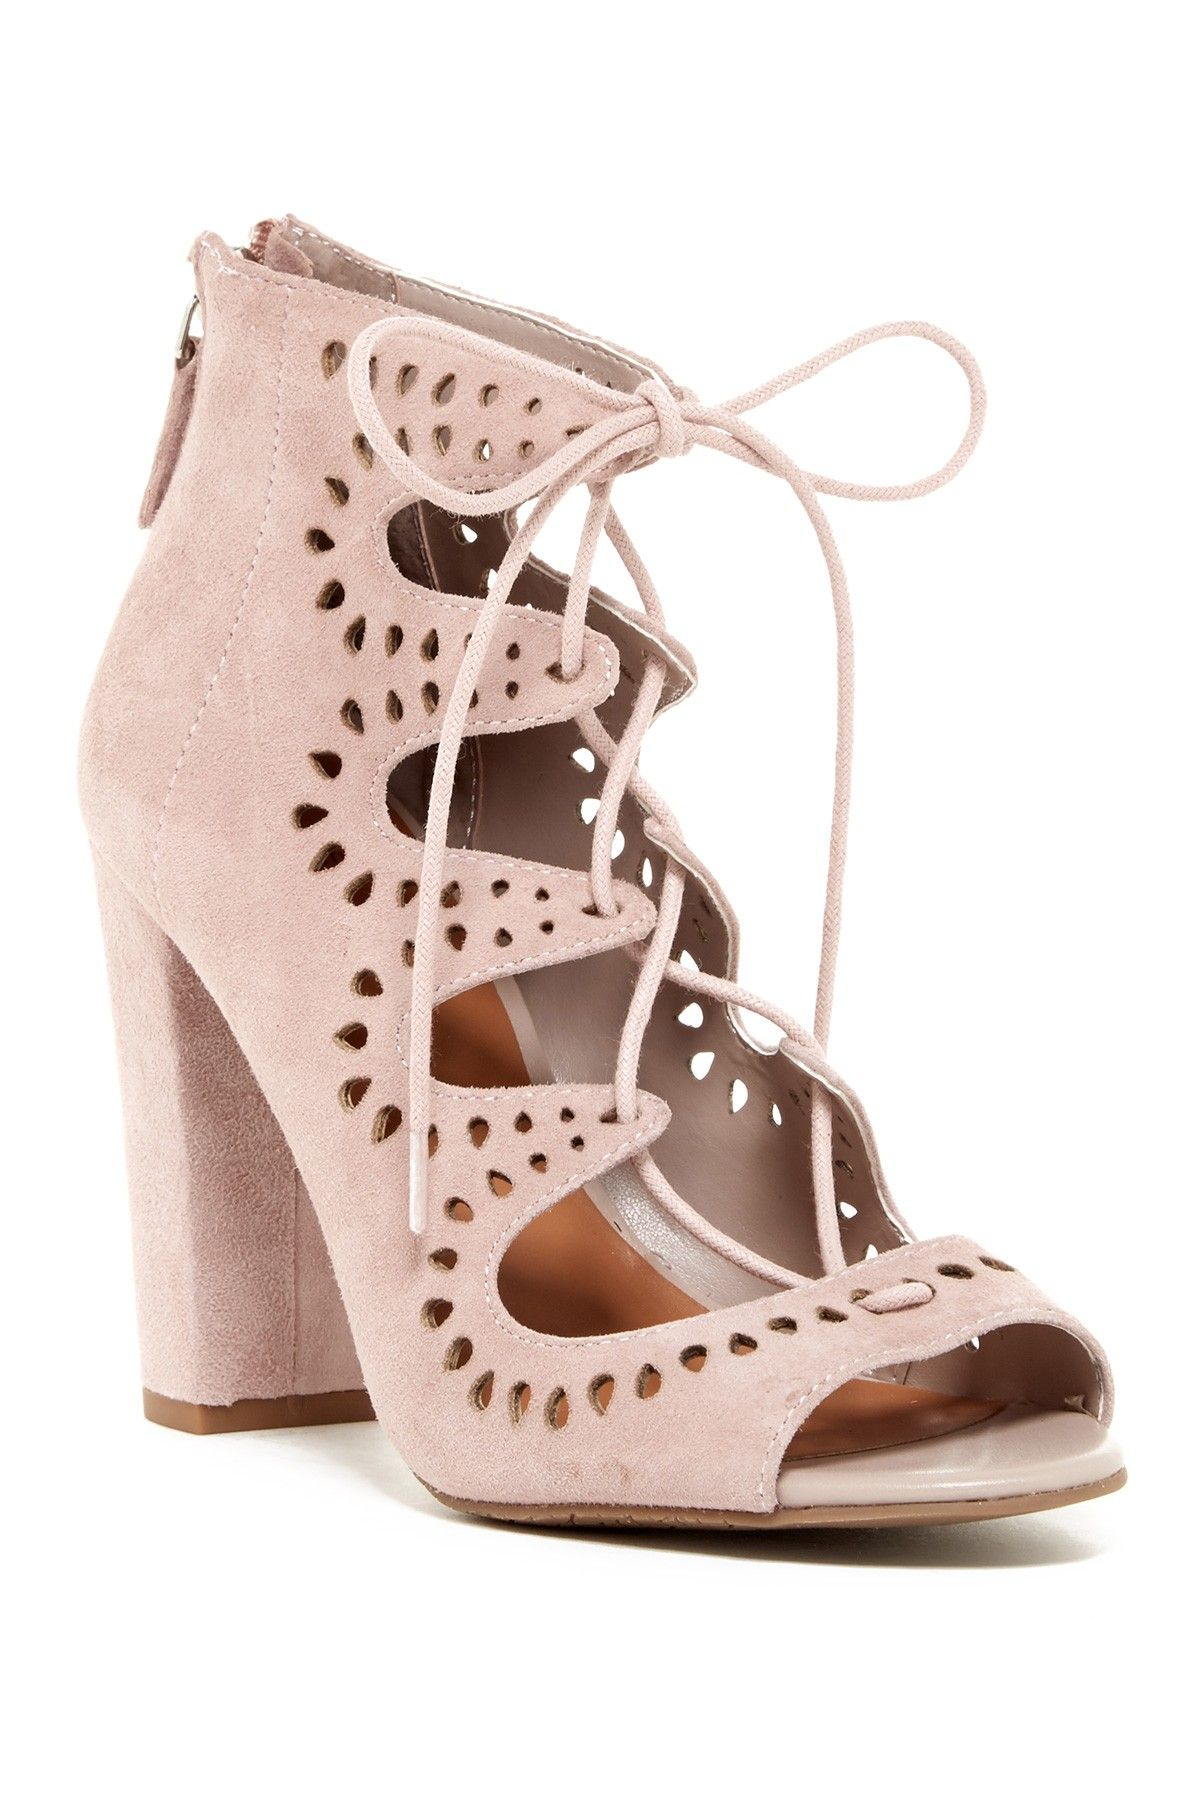 b23ba4eaeb71df Cecily Laser Cut Sandal - Wide Width Available